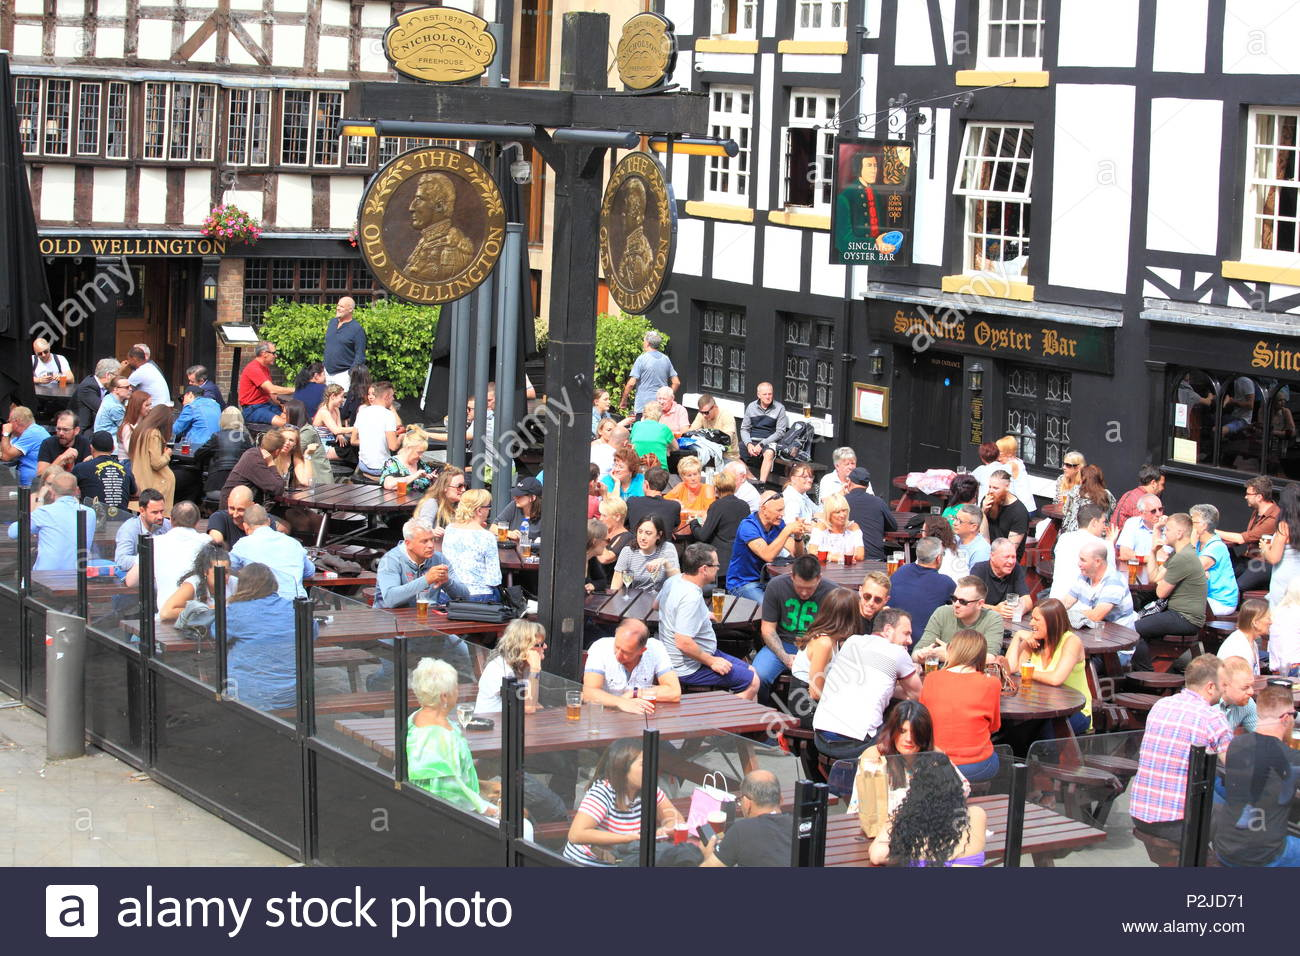 Crowds enjoying an afternoon drink at Sinclairs Oyster Bar at Manchester City Centre, Manchester UK Summer June 2018 Stock Photo